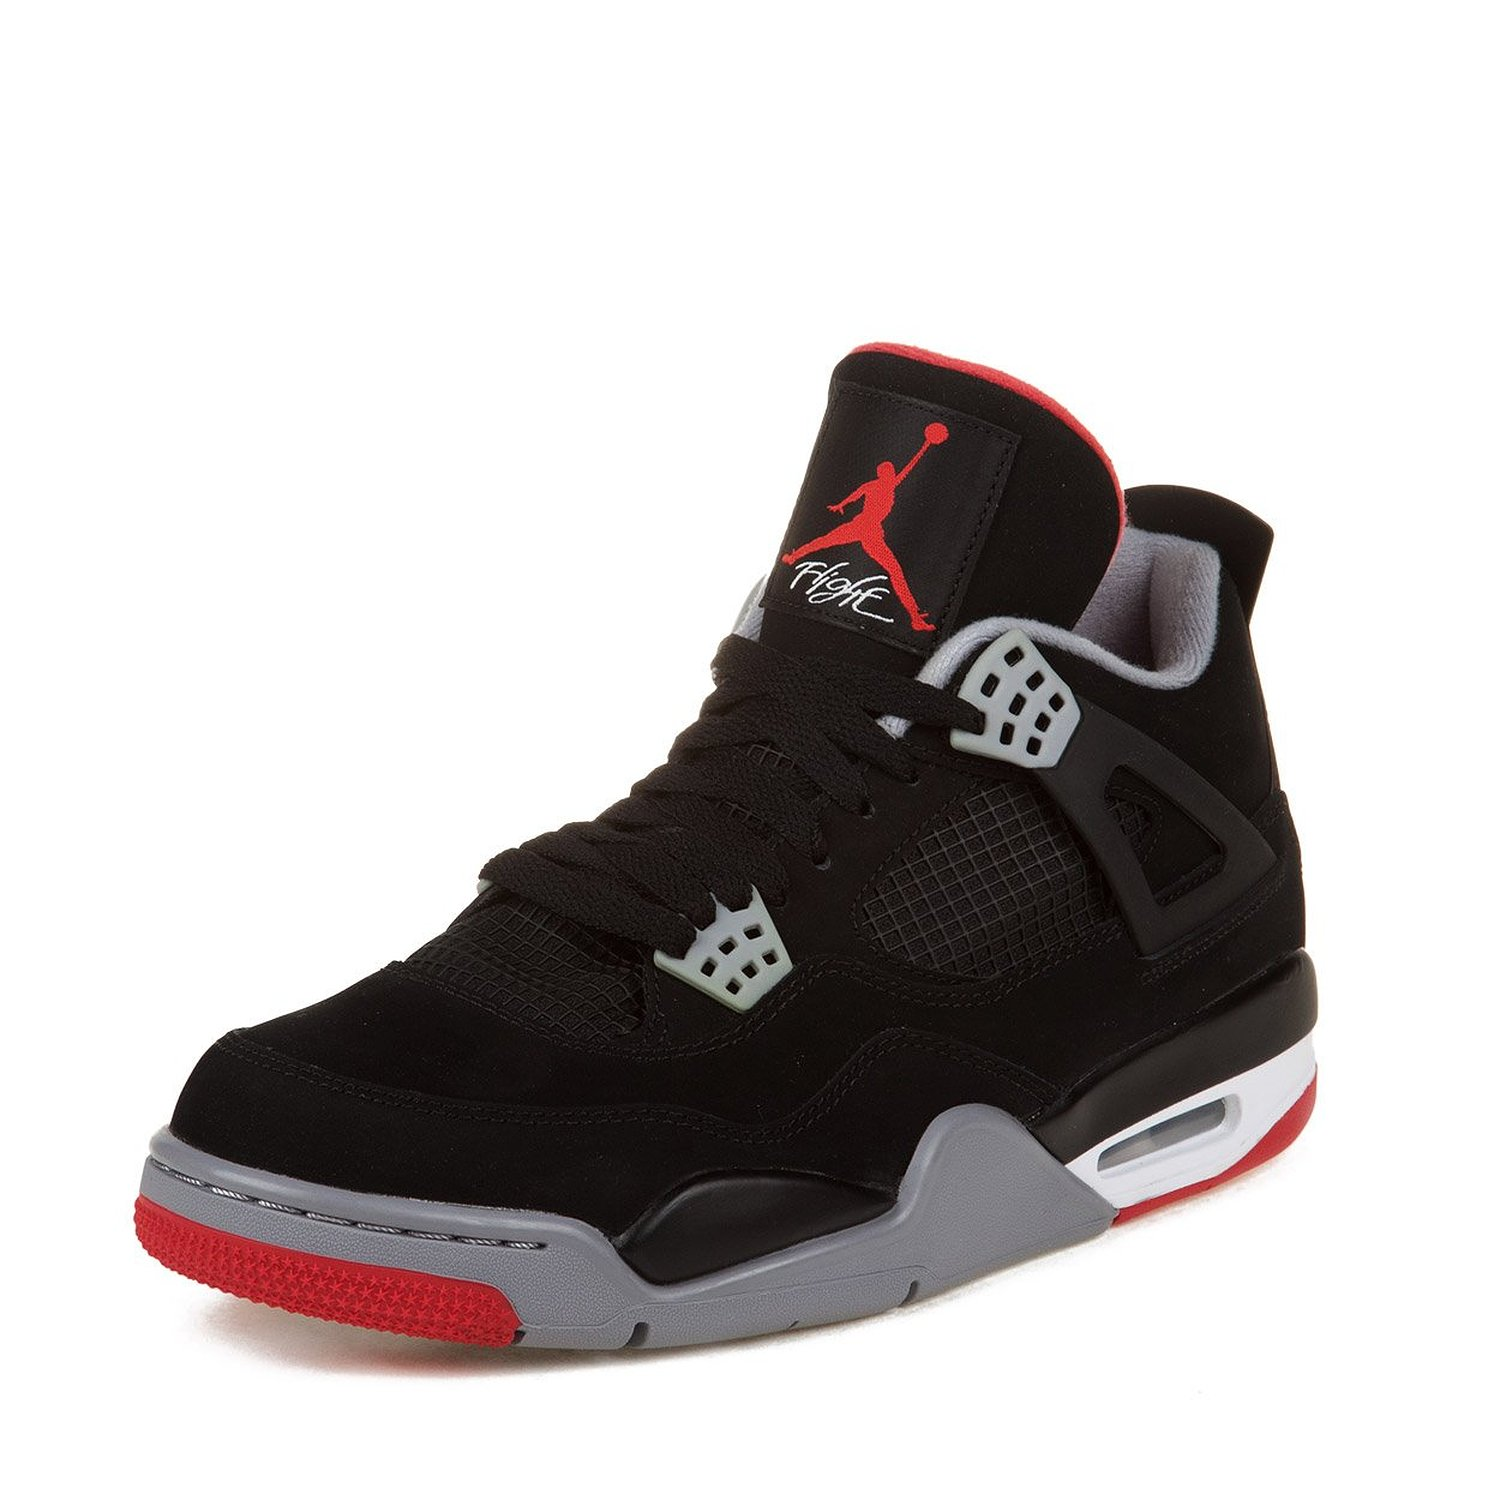 "Nike Mens Air Jordan 4 Retro ""Bred"" Black/Cement Grey-Fire Red Suede Basketball Shoes Size 13"